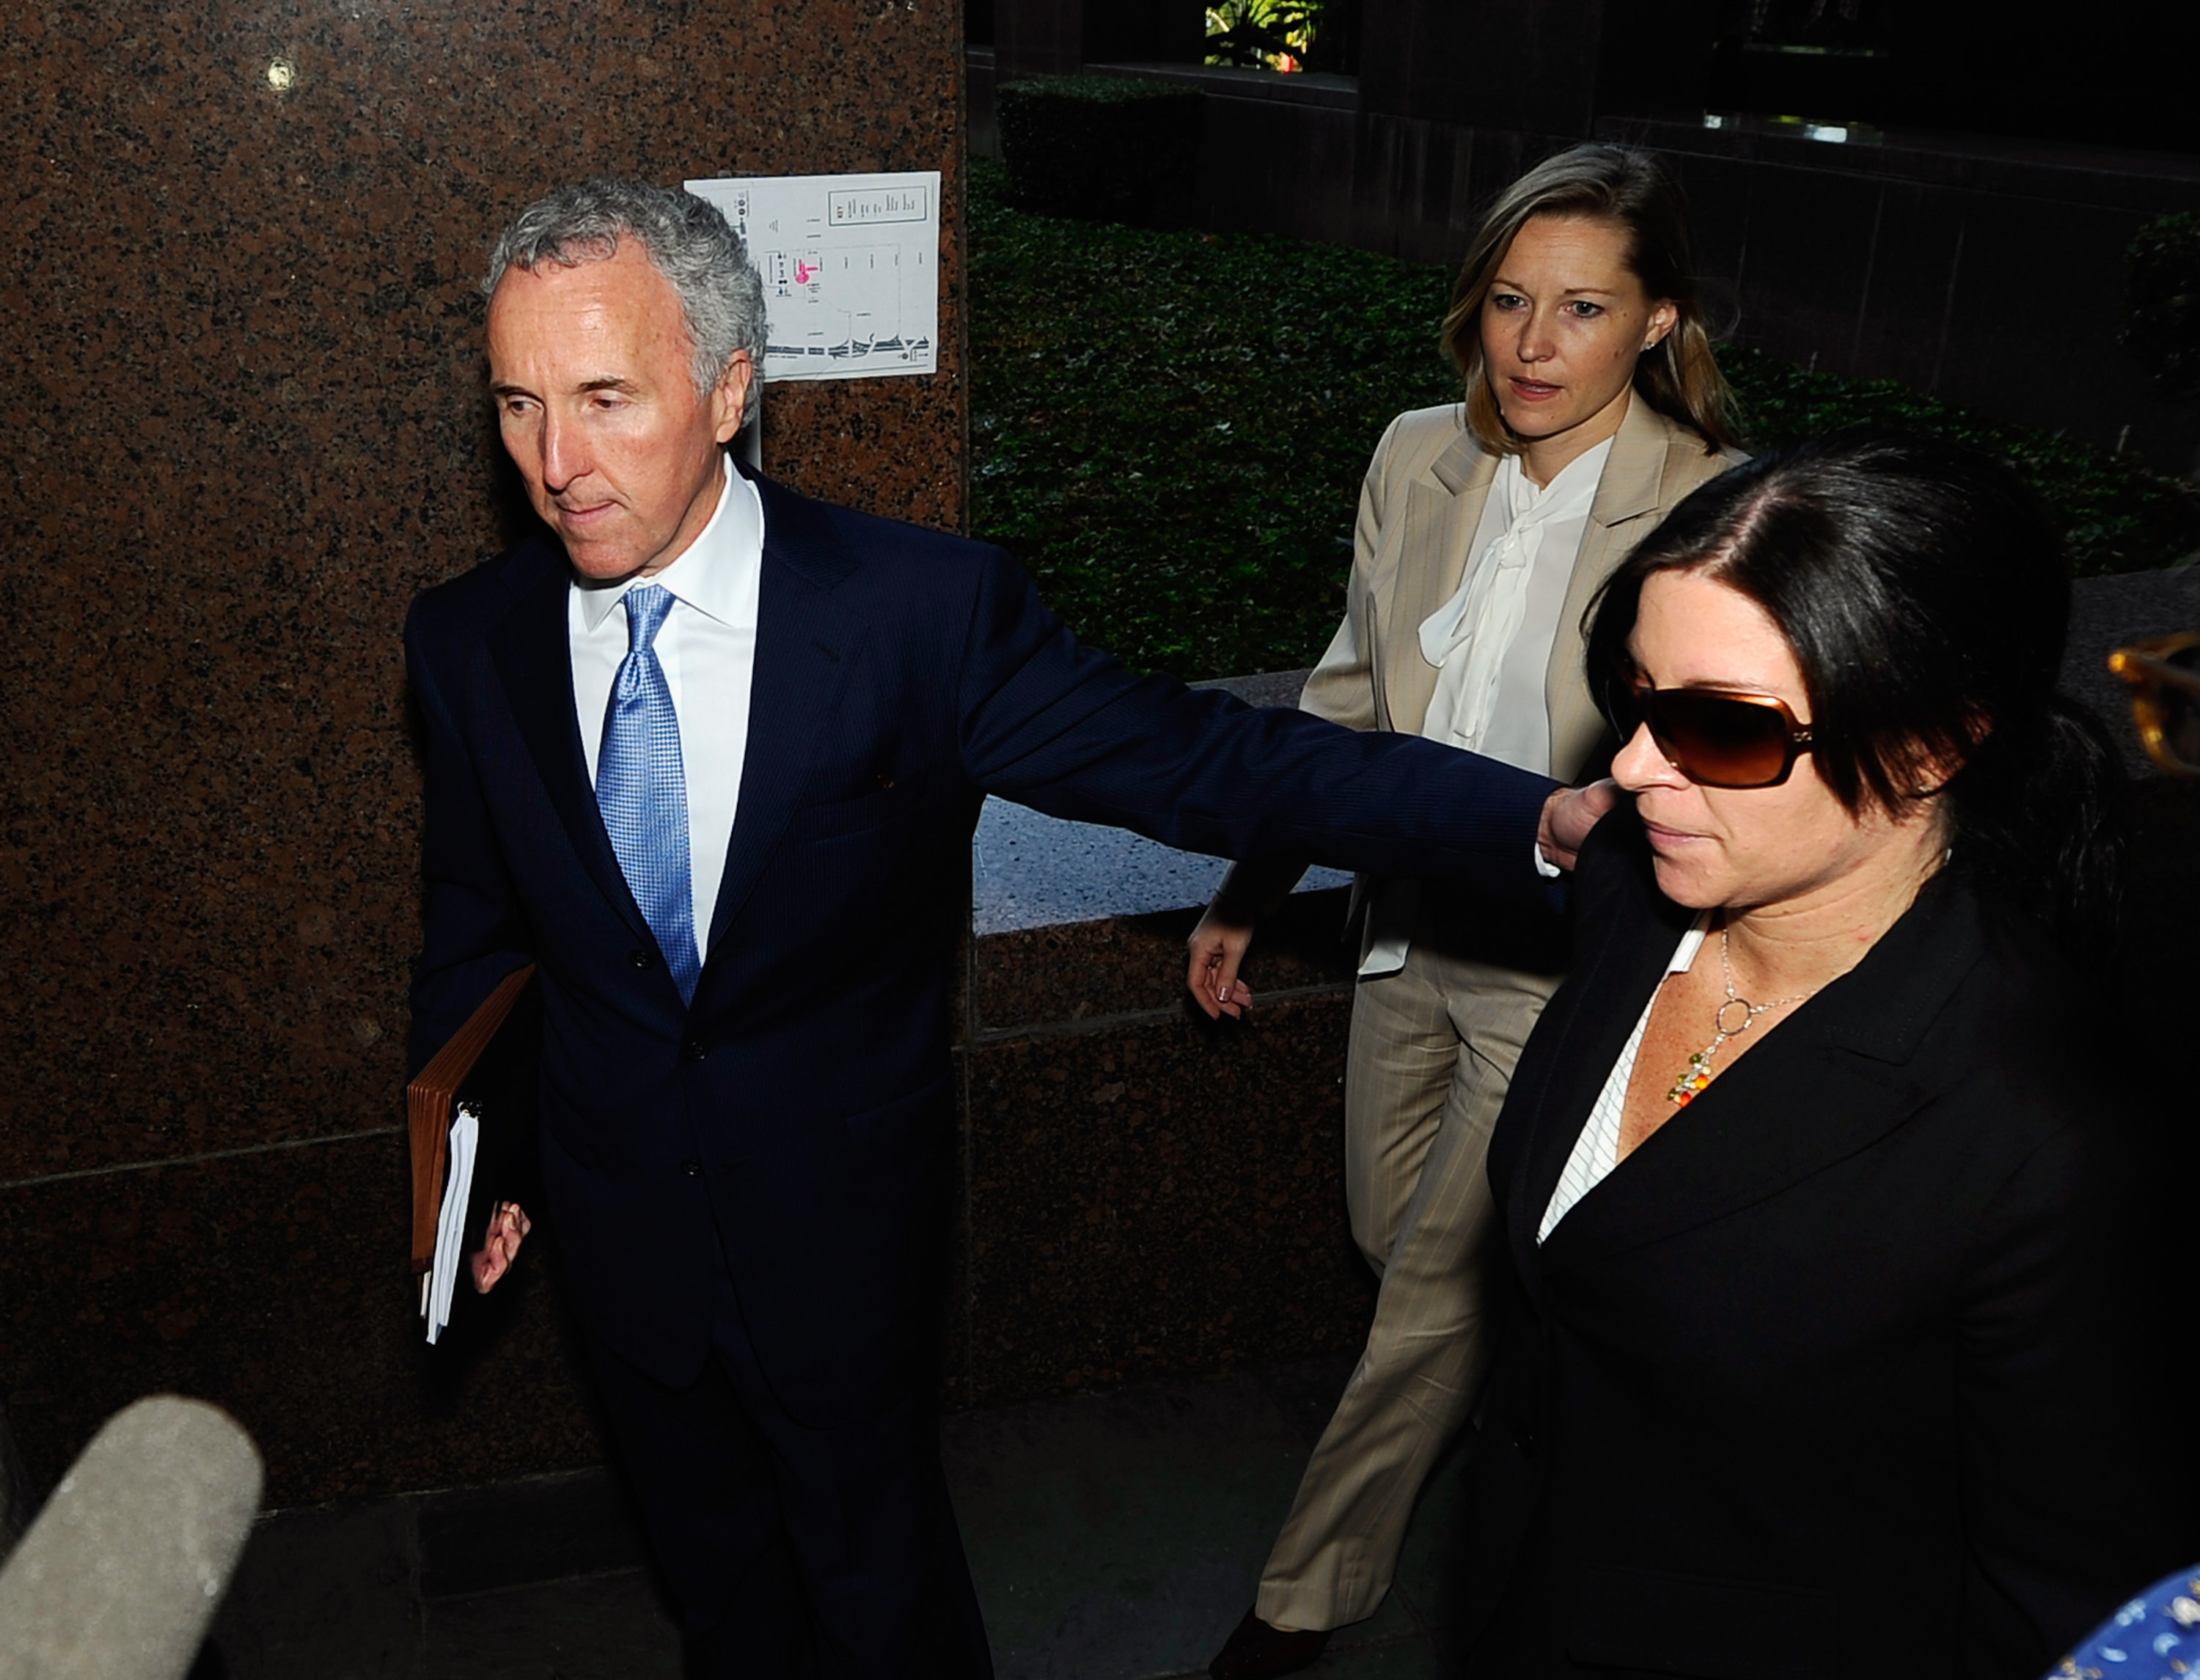 LOS ANGELES, CA - AUGUST 31:  Frank McCourt (L), owner of the Los Angeles Dodgers, at Los Angeles County Superior Court for day two of a non-jury divorce trial on August 31, 2010 in Los Angeles, California. The trial, being presided over by Judge Scott M.